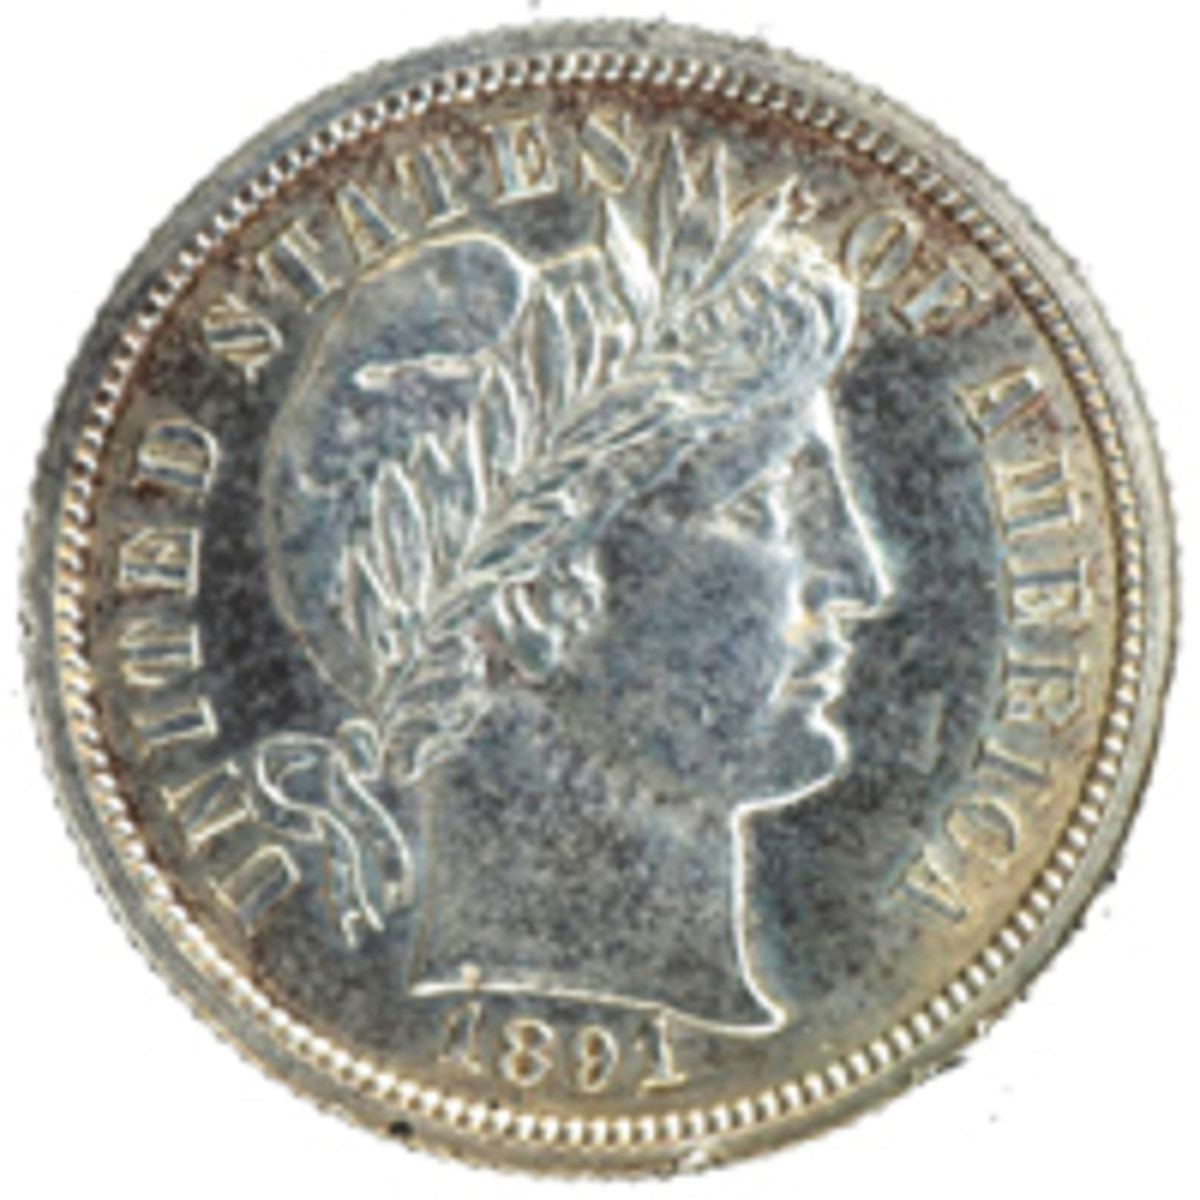 Shown is an 1891 pattern for the Barber dime.